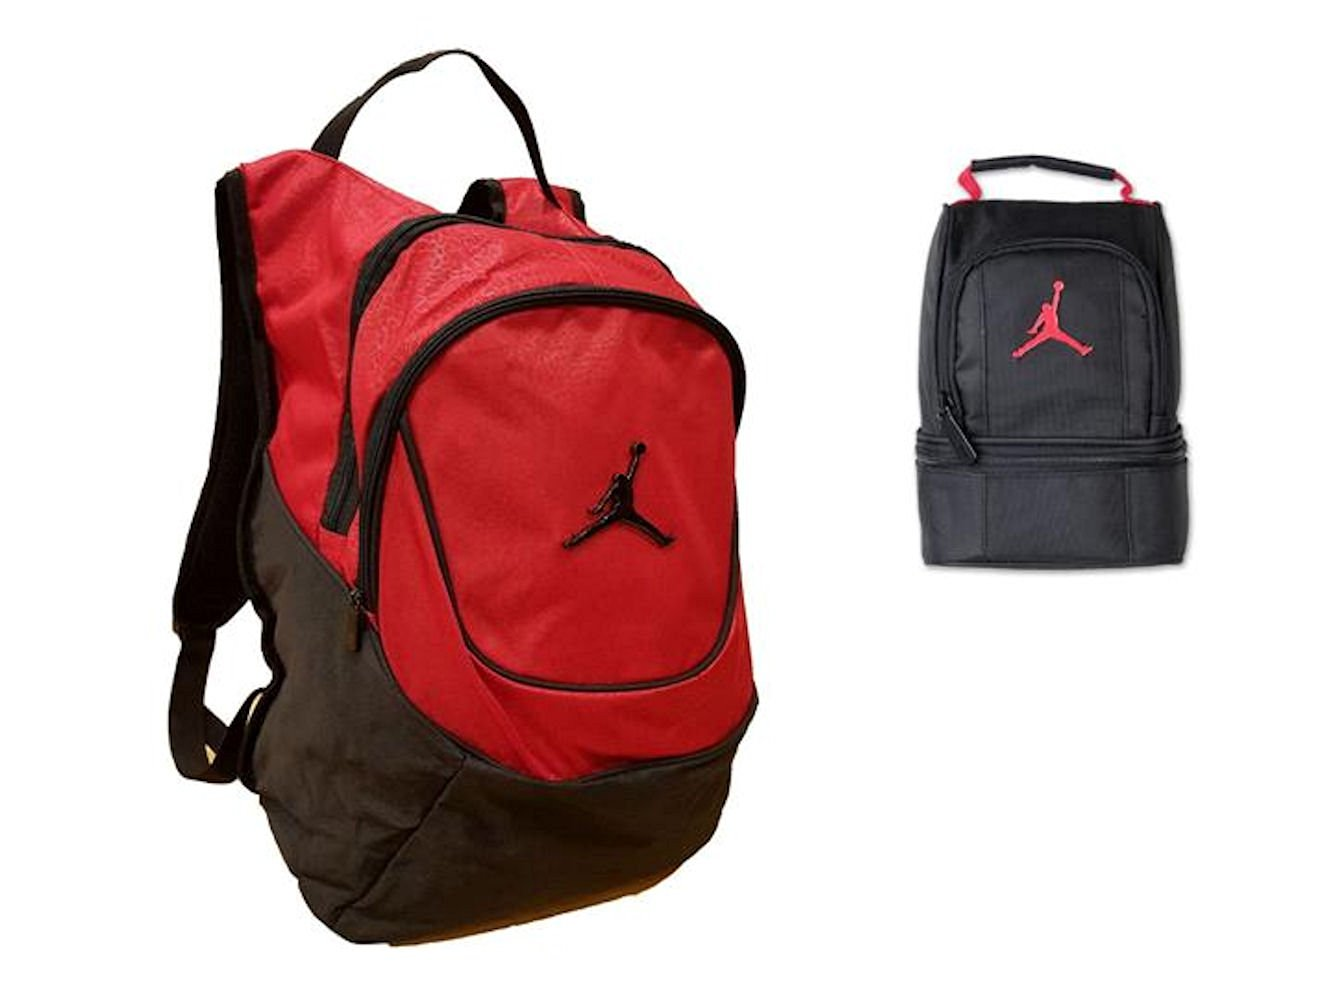 f2d299d331b Get Quotations · Nike Air Jordan Jumpman 23 Red   Black Backpack Lunch Tote  Bag Combo + FREE Cell